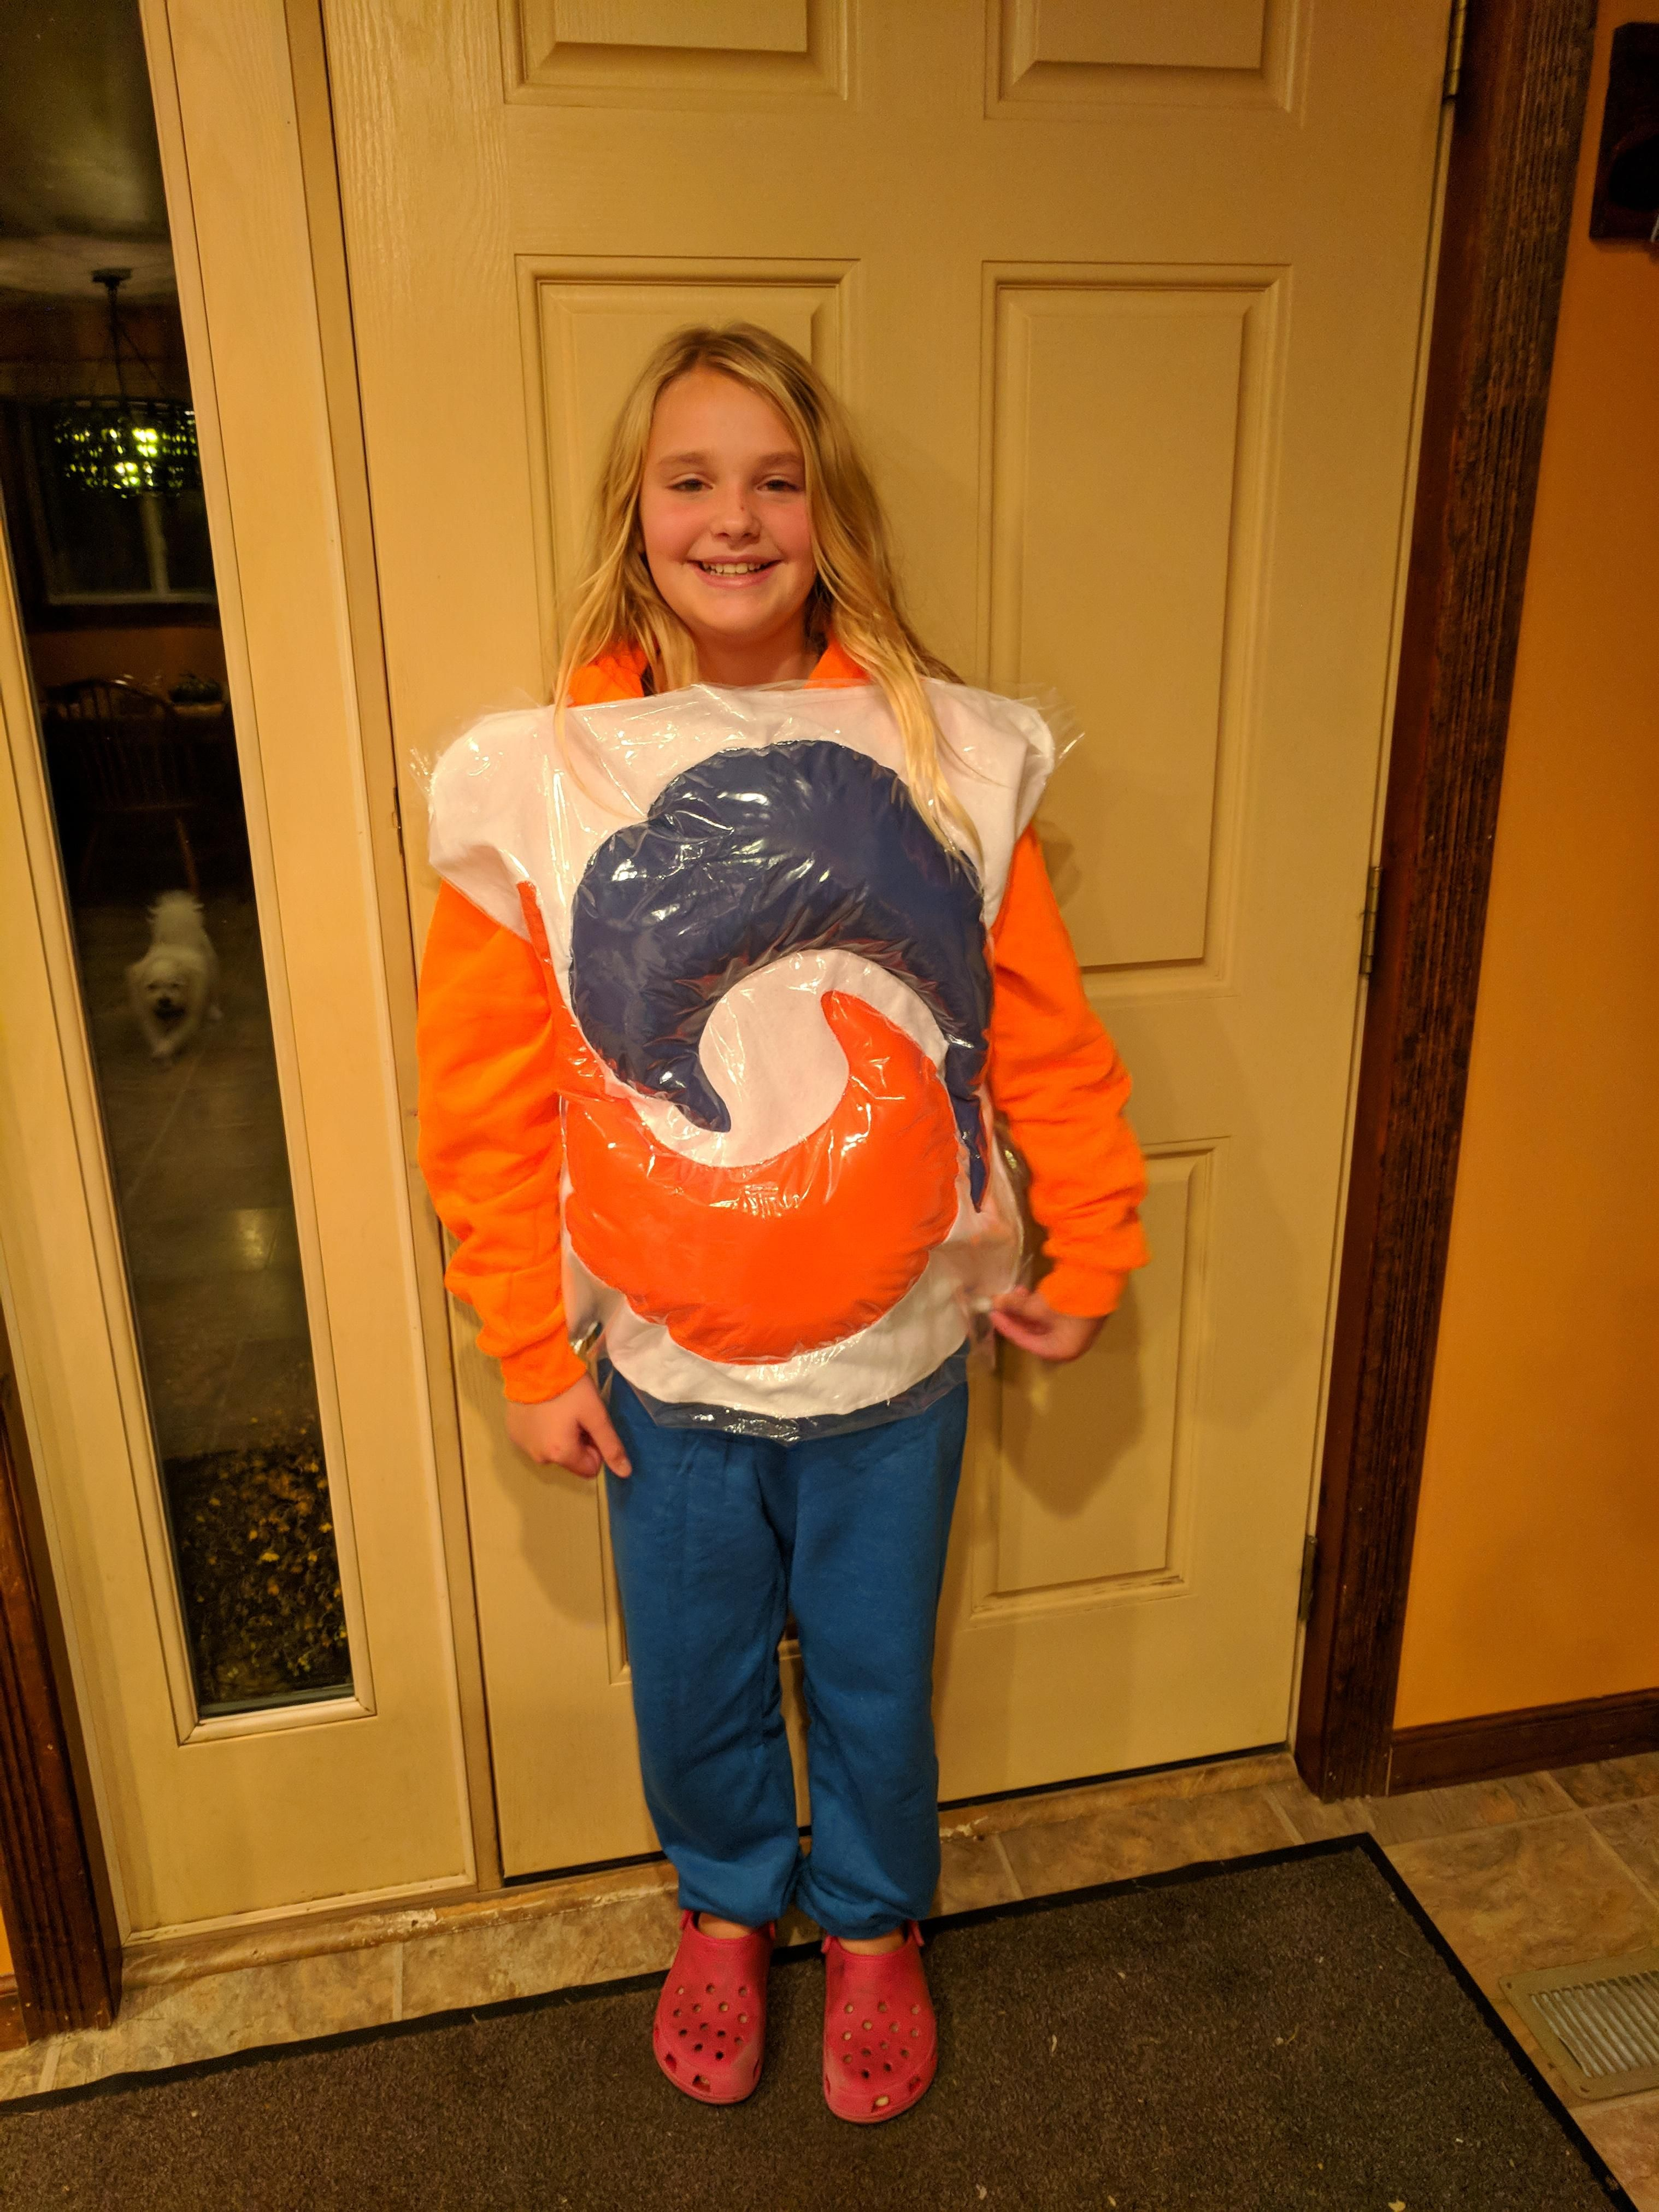 My daughter wanted to be a Tide pod. Be nice - she's just an 11 year old.